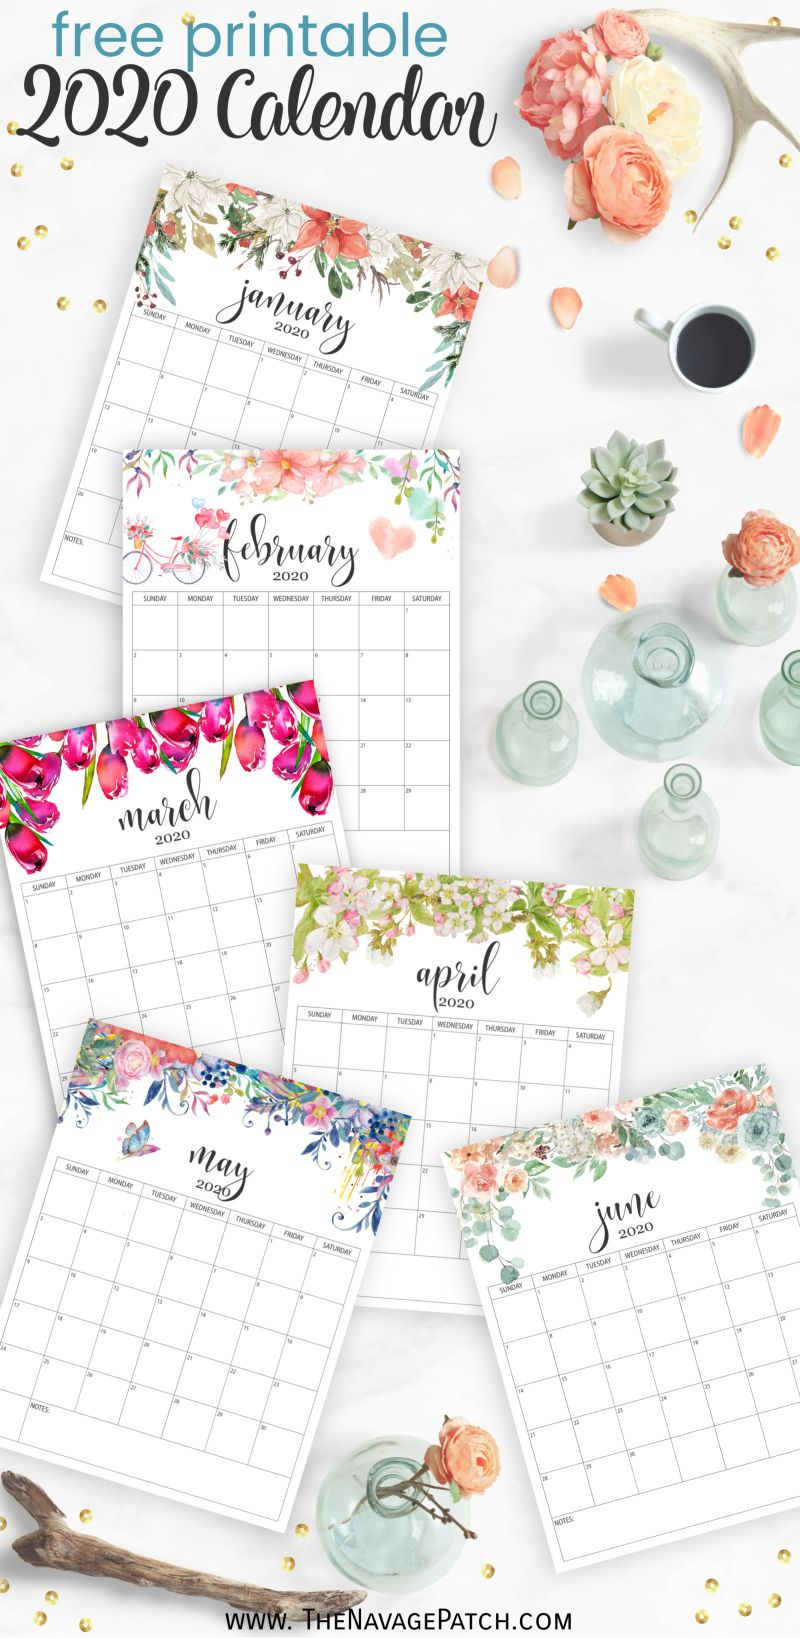 Free Printable Calendar 2020 - The Navage Patch